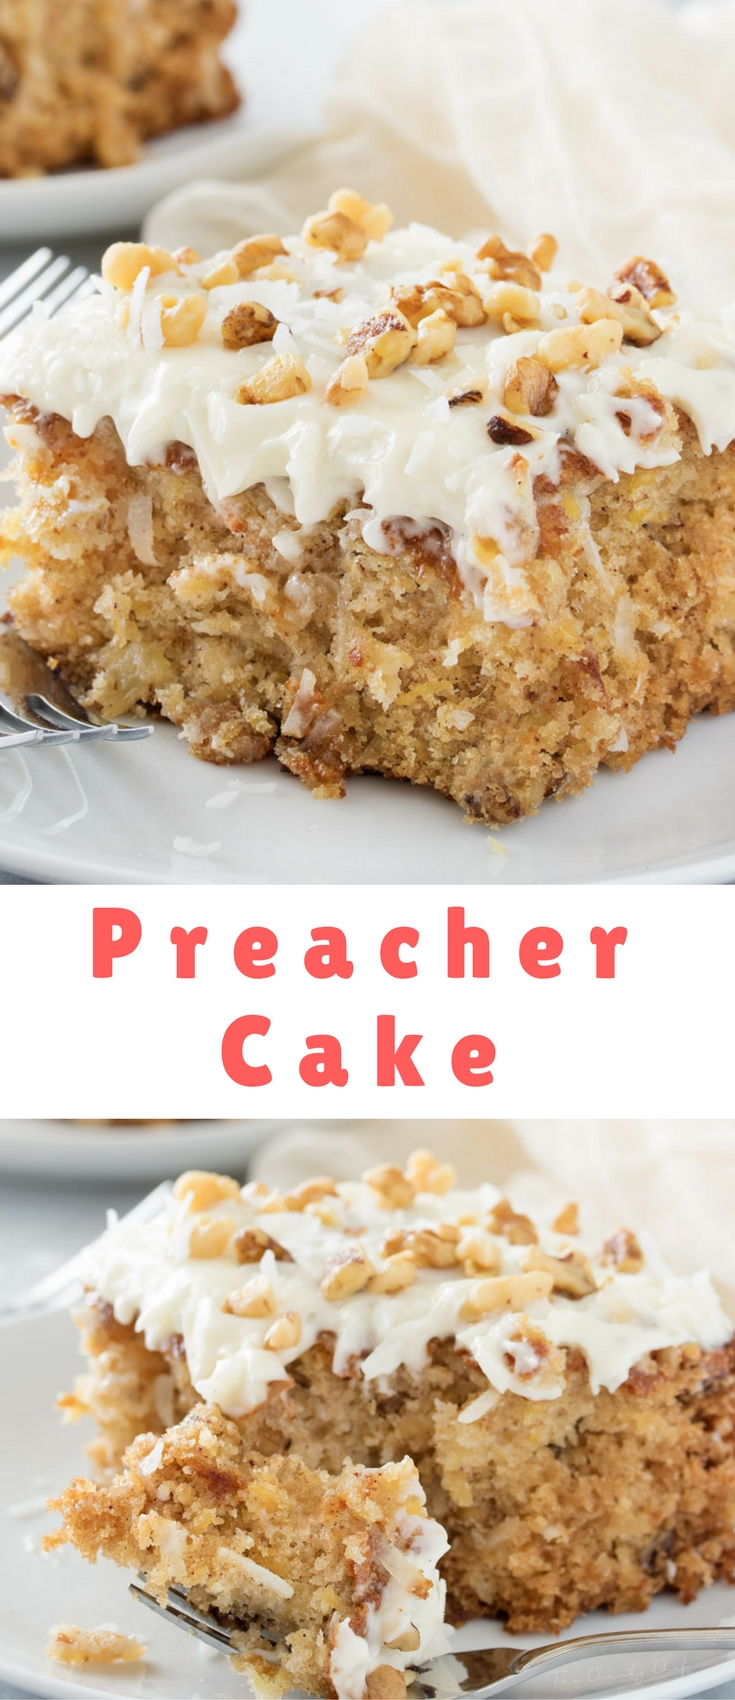 This light, moist, and tropical preacher cake is the easiest dessert ever! You mix it together with a wooden spoon, in one bowl... no mixer needed!